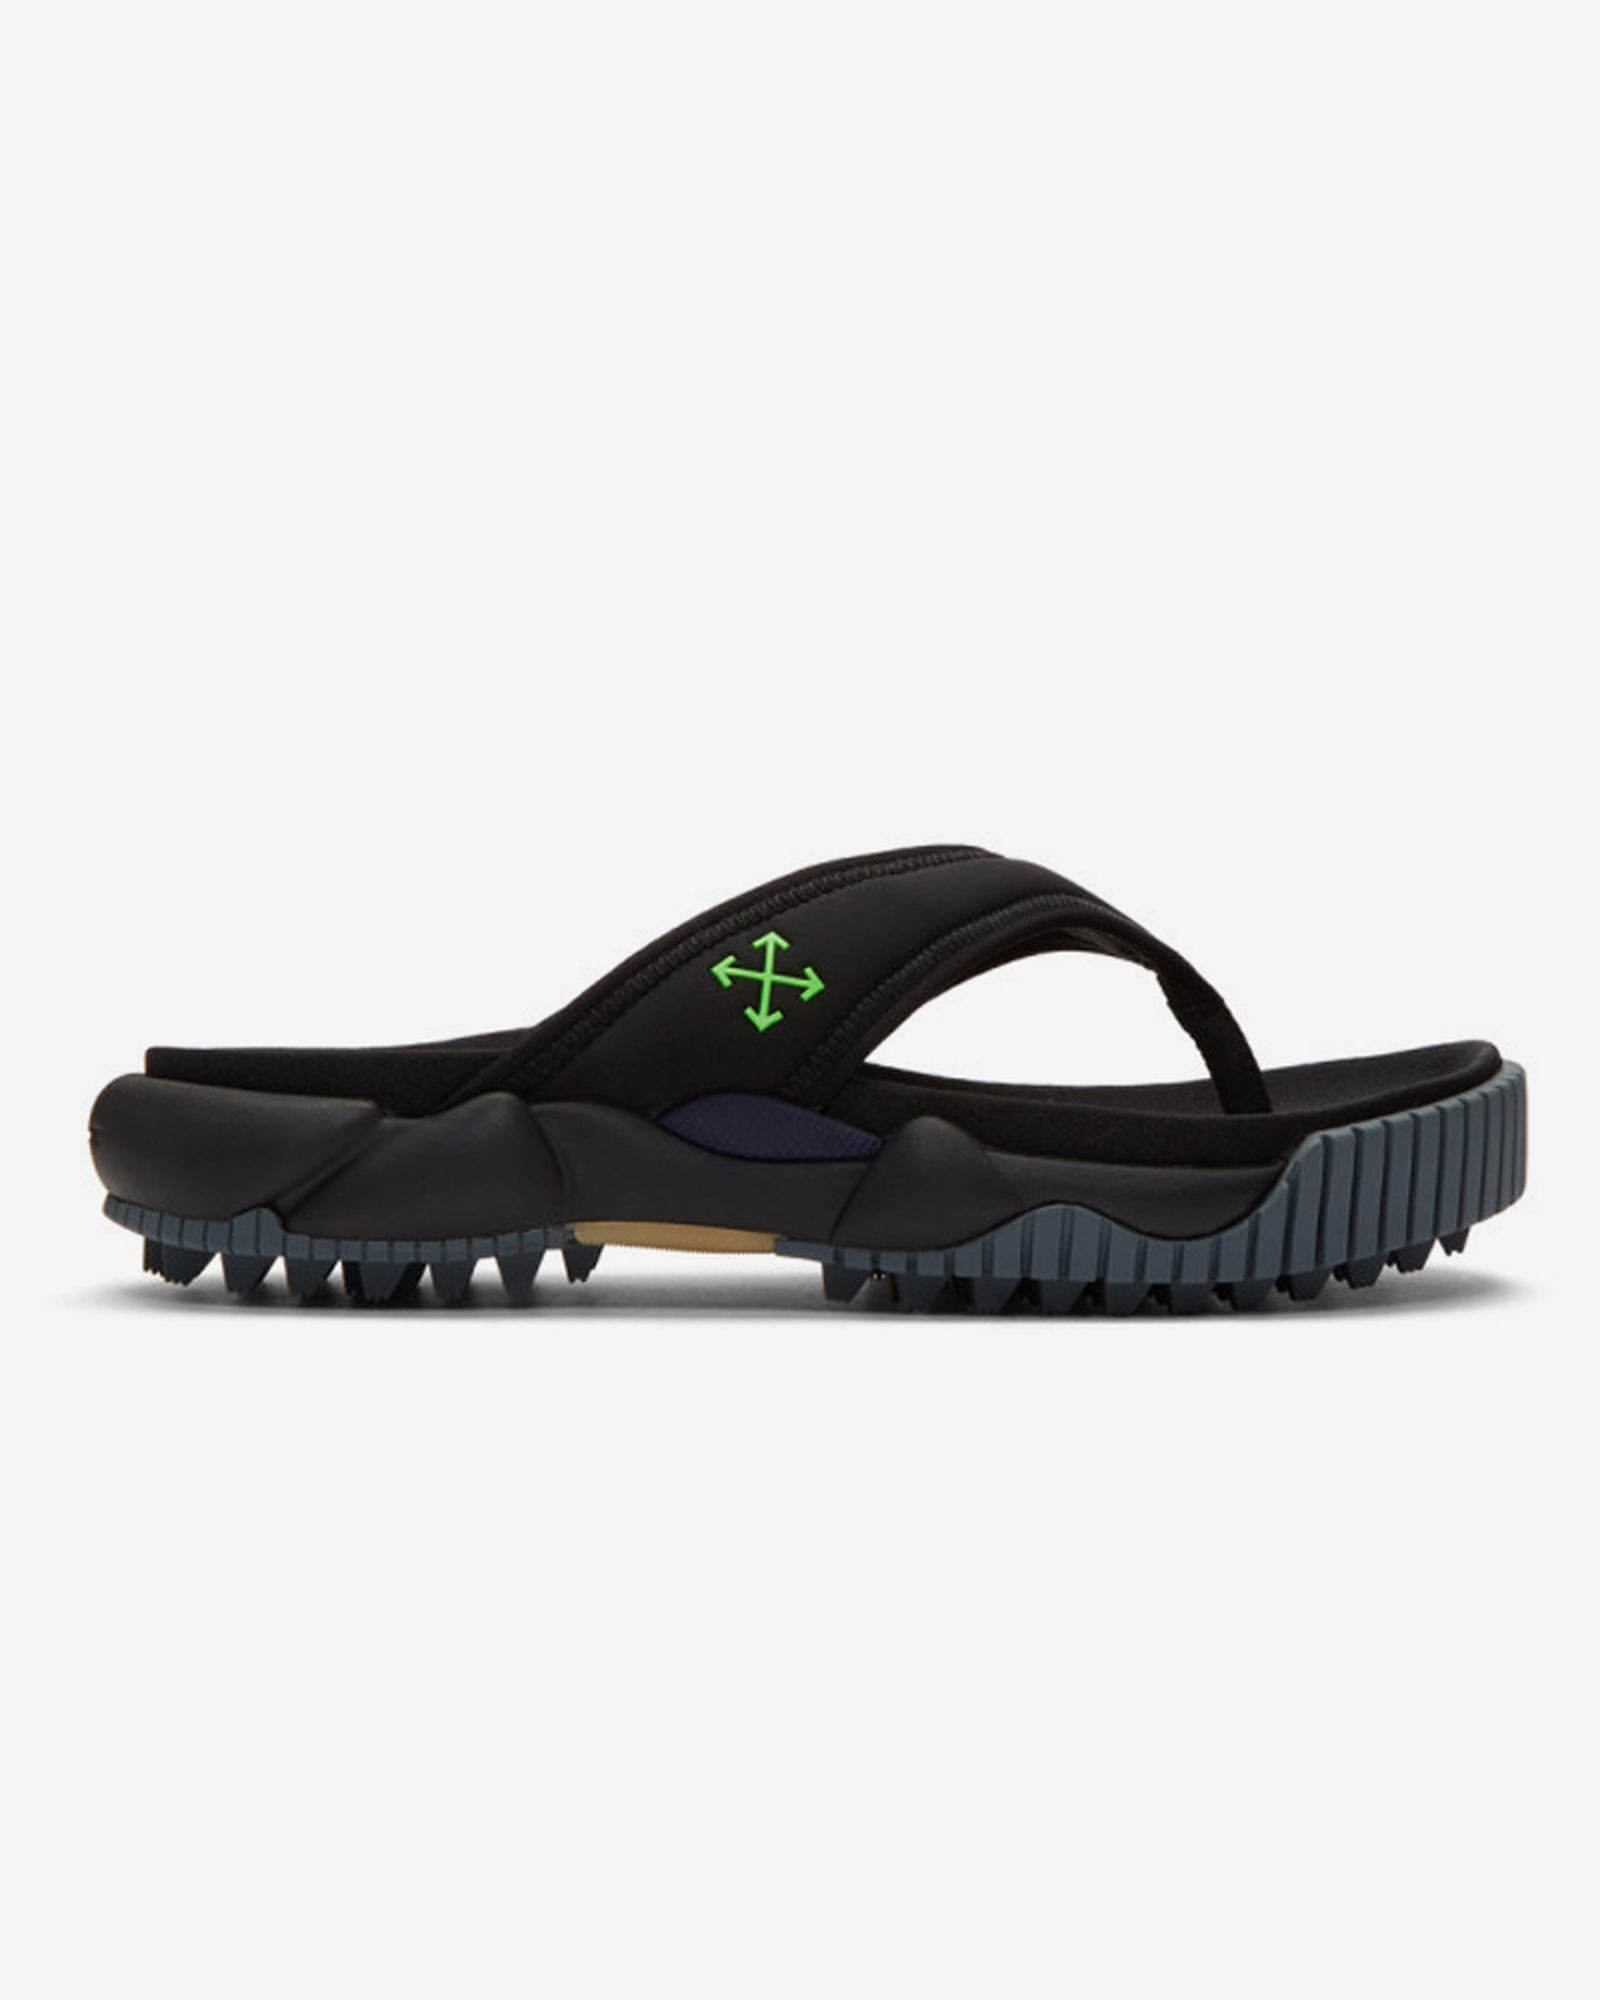 dad-sandals-roundtable-shopping-guide-15